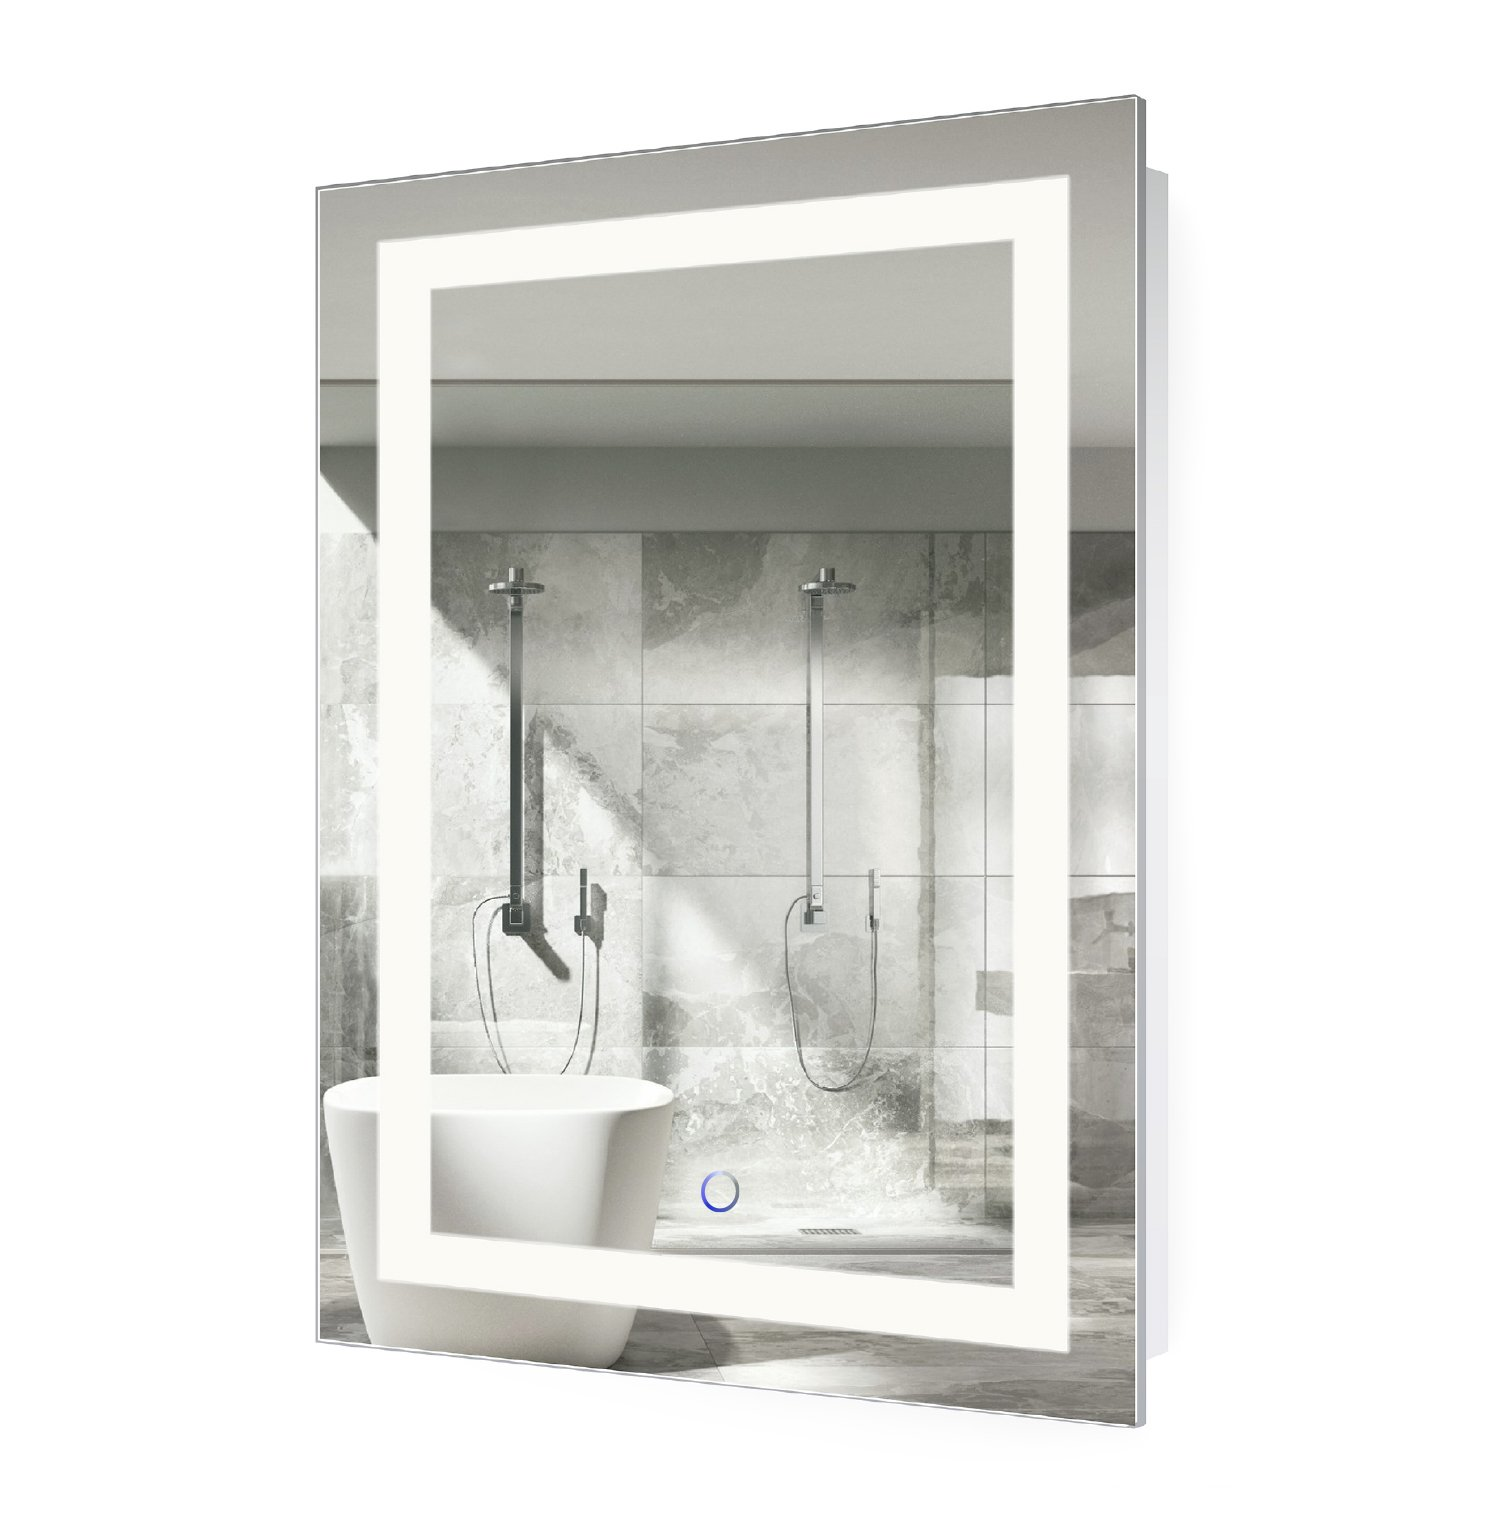 LED Bathroom Mirror 24 Inch X 36 Inch | Lighted Vanity Mirror Includes Defogger & Dimmer| Wall Mount Vertical or Horizontal by Krugg